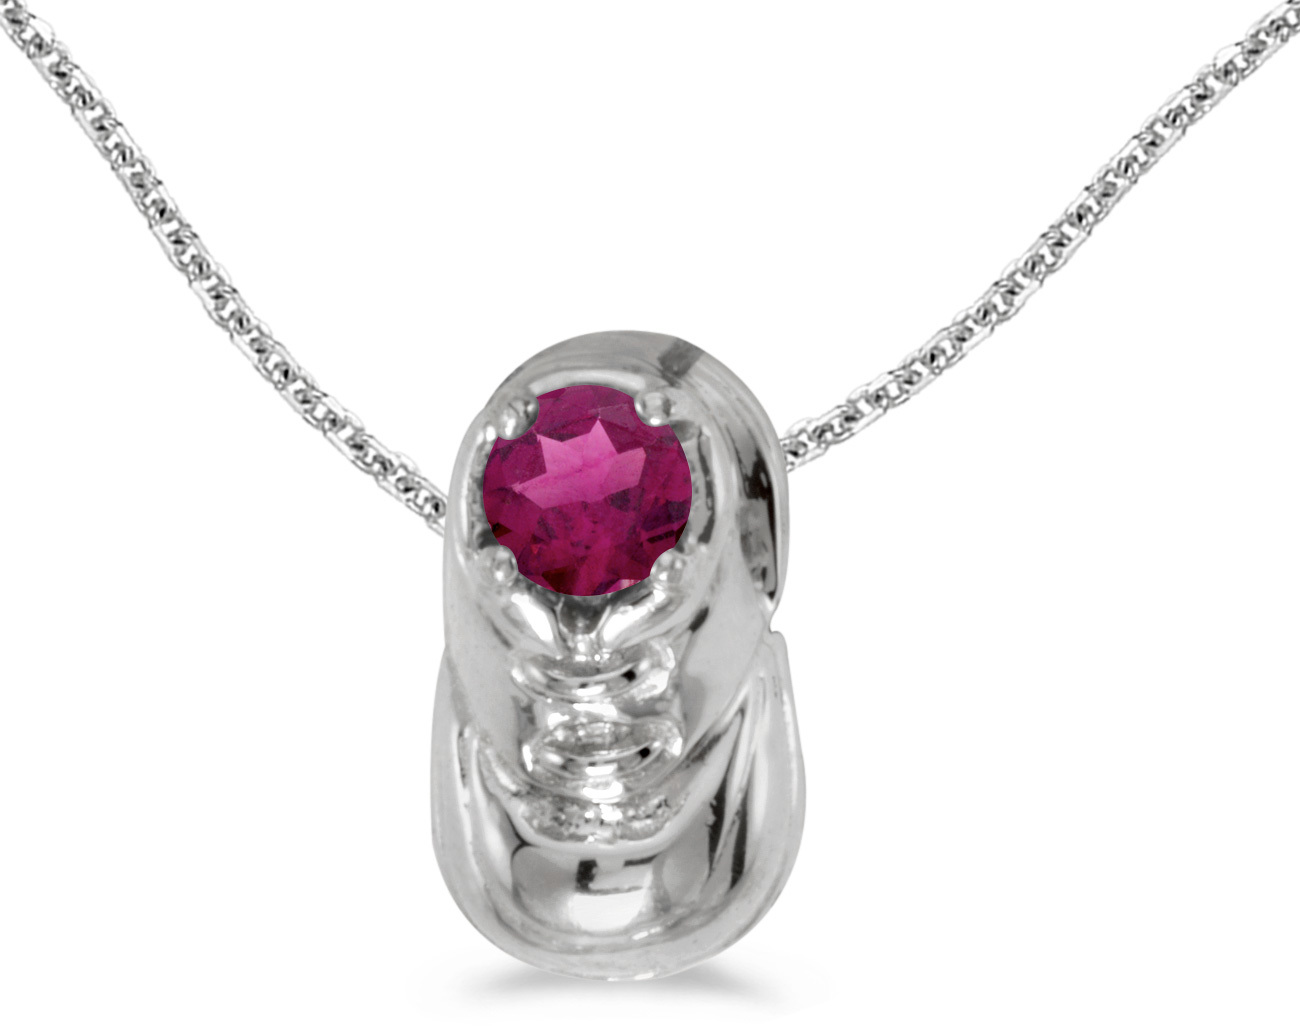 10k White Gold Round Rhodolite Garnet Baby Bootie Pendant (Chain NOT included)